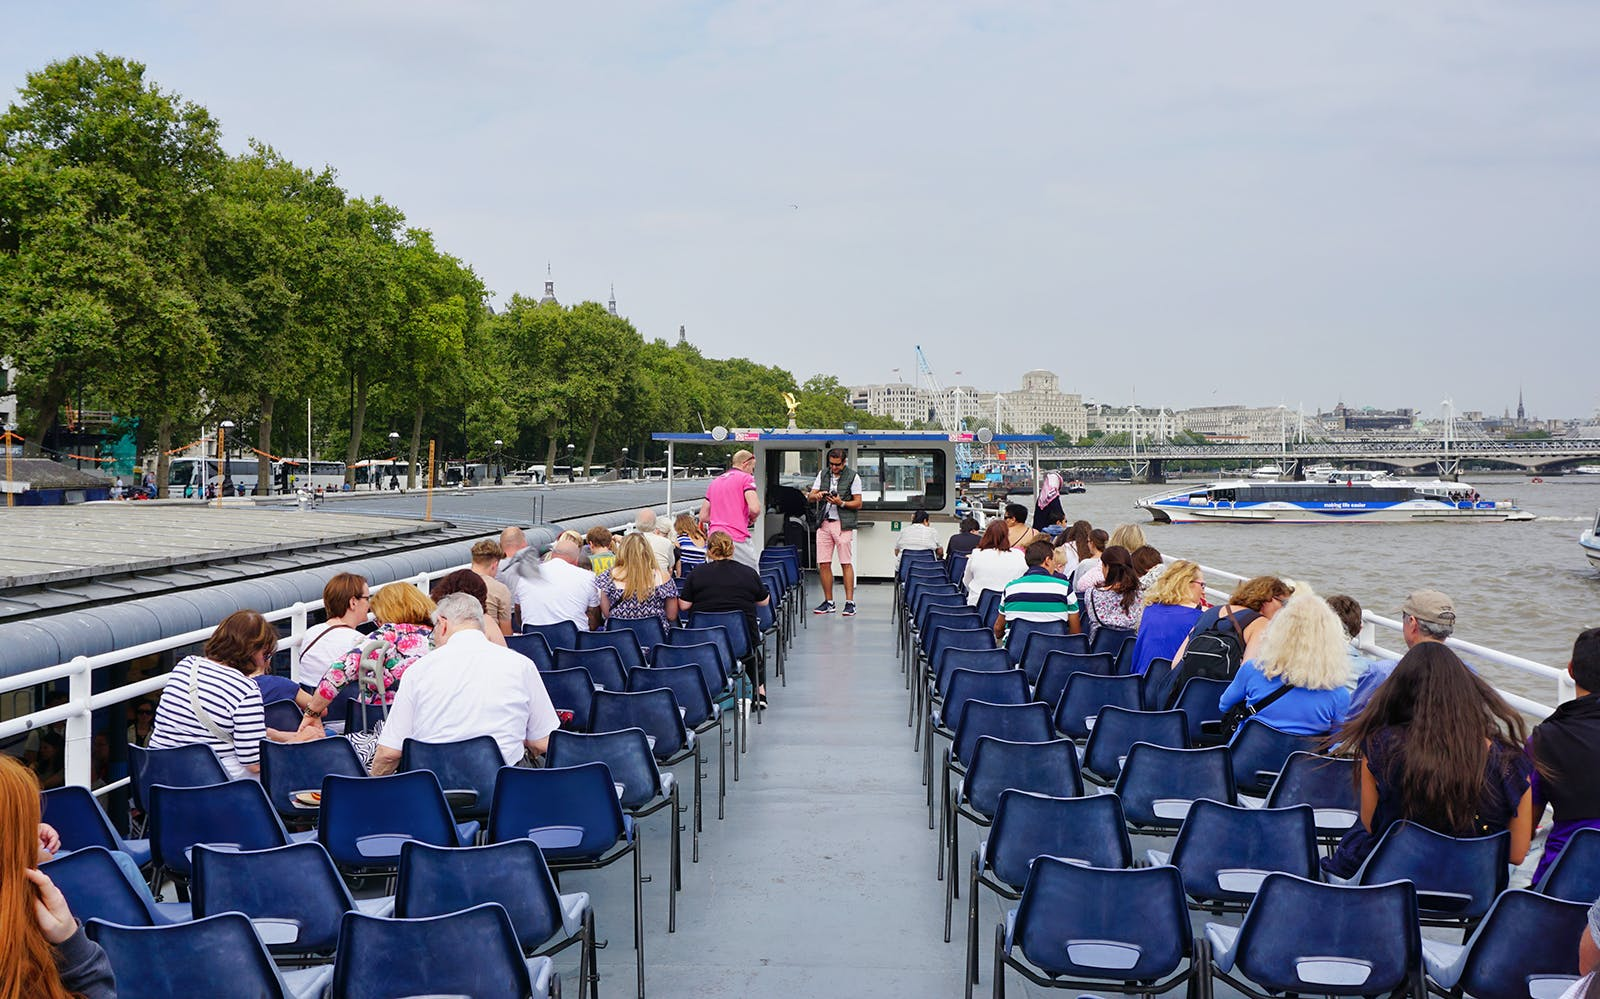 Thames River Circular Cruise from Westminster to St. Katherines